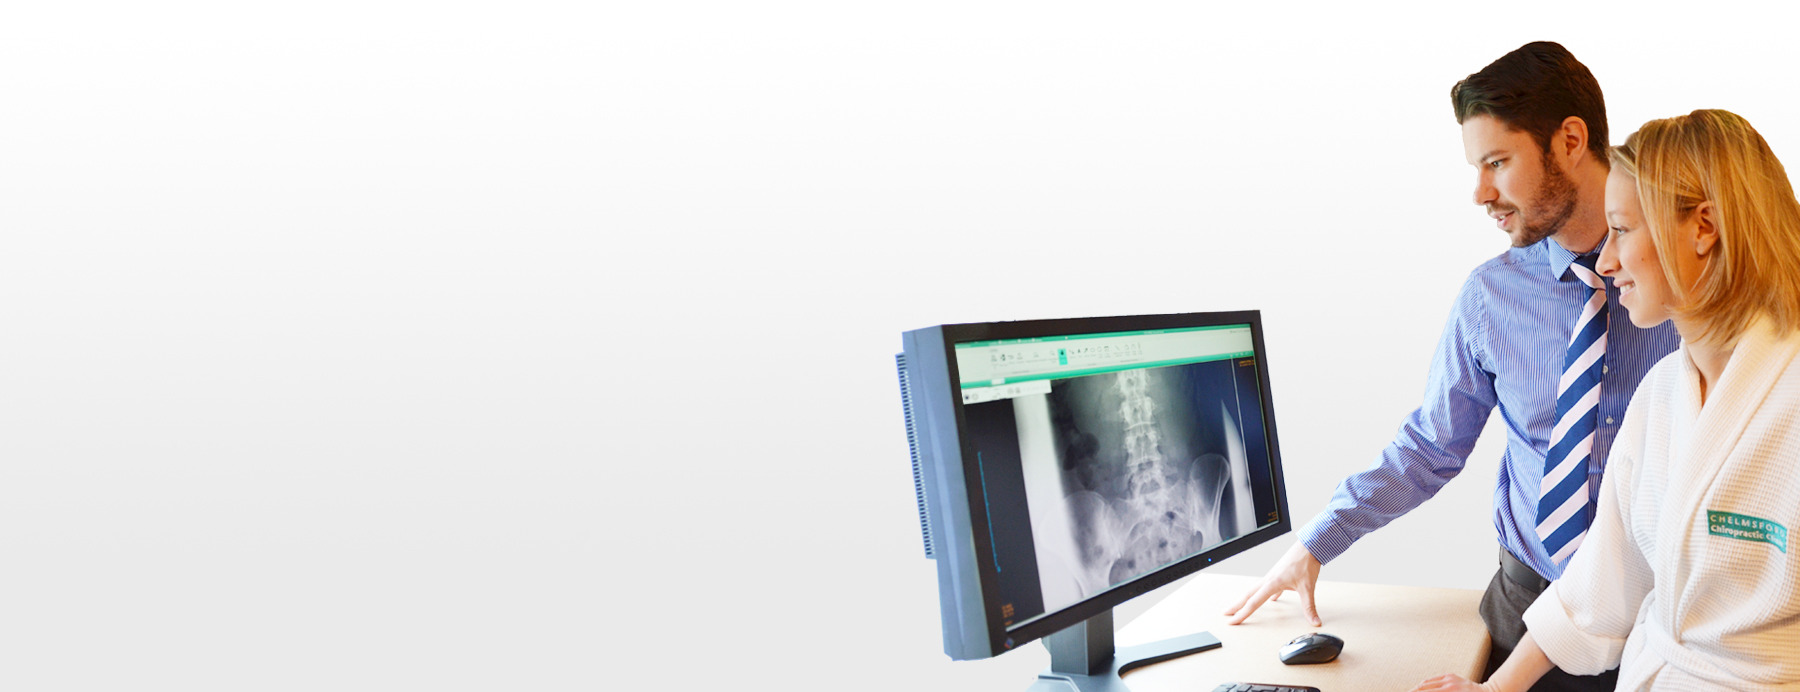 Onsite digital X-rays for accurate, visual care